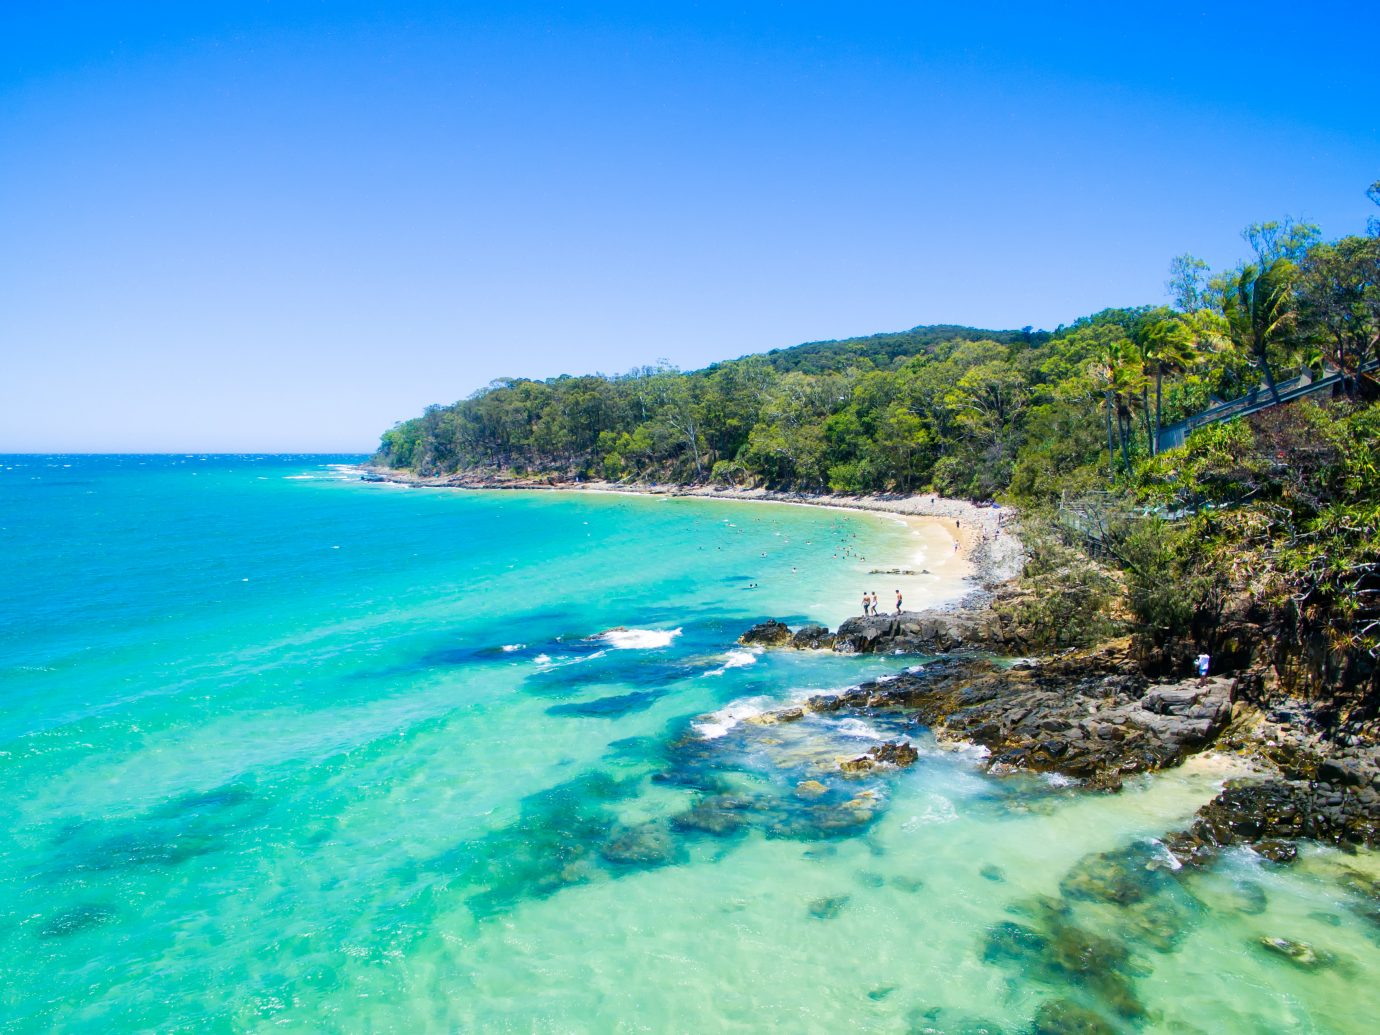 looking down over the ocean at Noosa on the Sunshine Coast